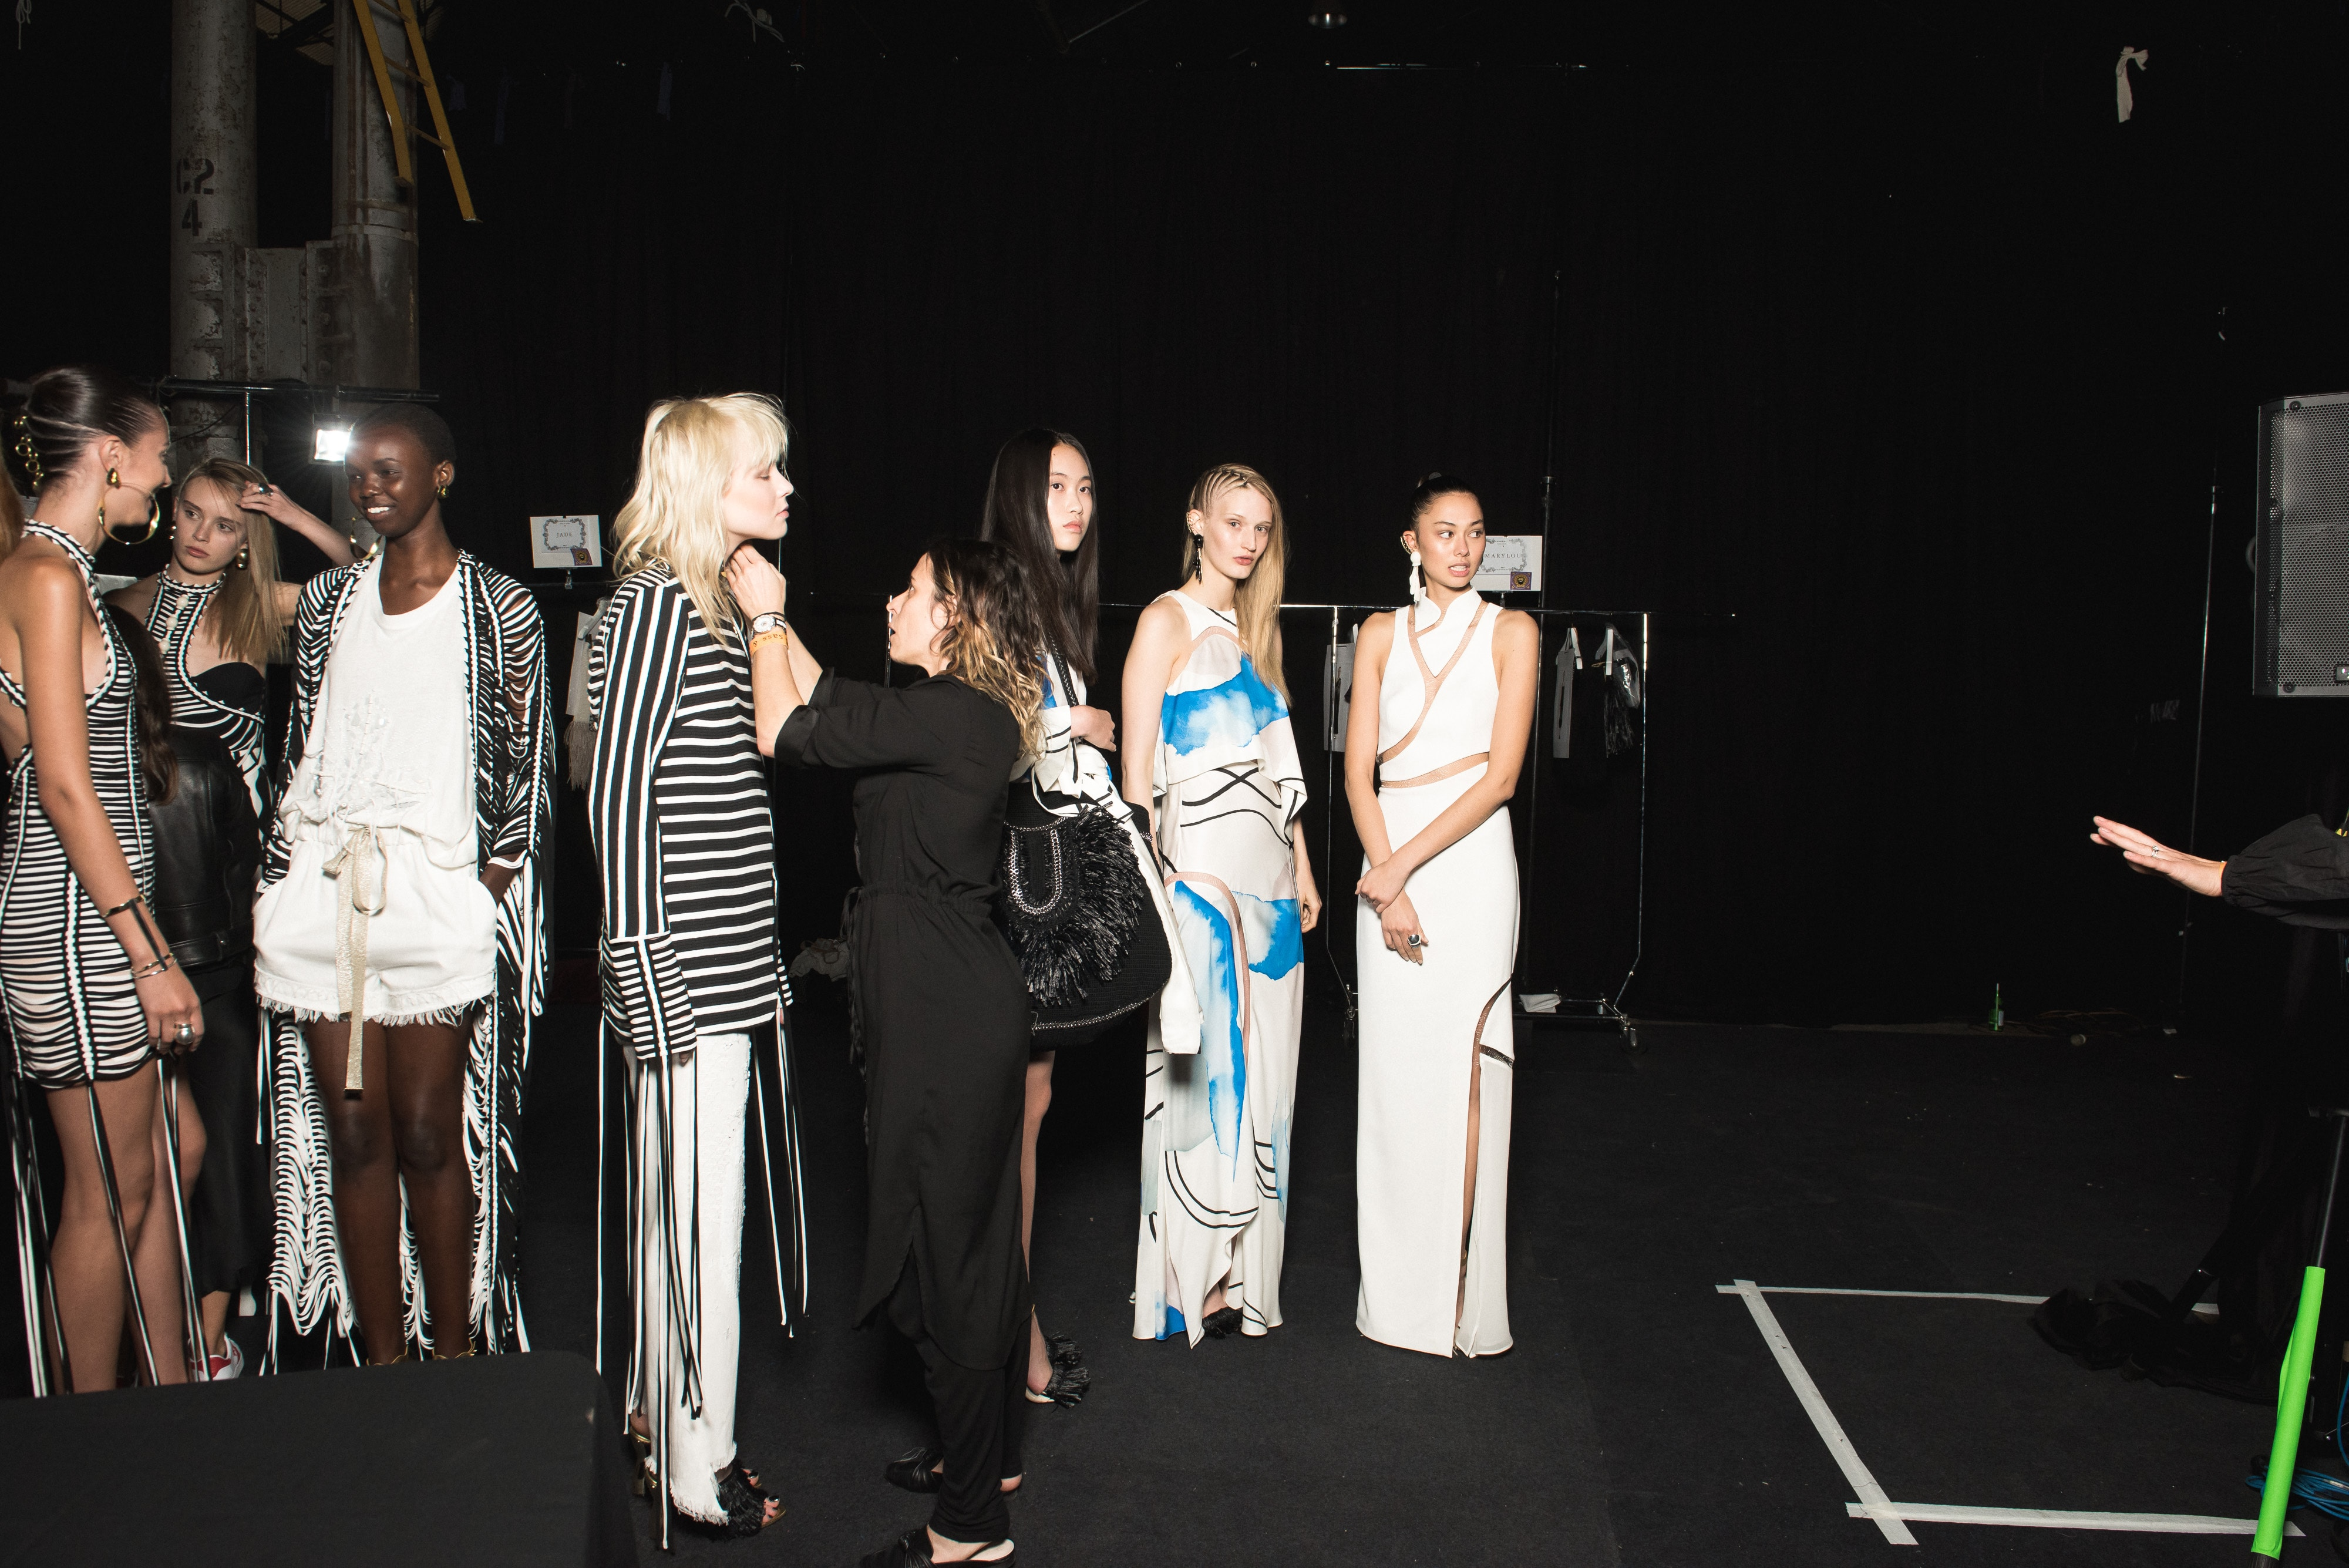 Is Sustainable Fashion an Oxymoron? A Look at Fashion Week